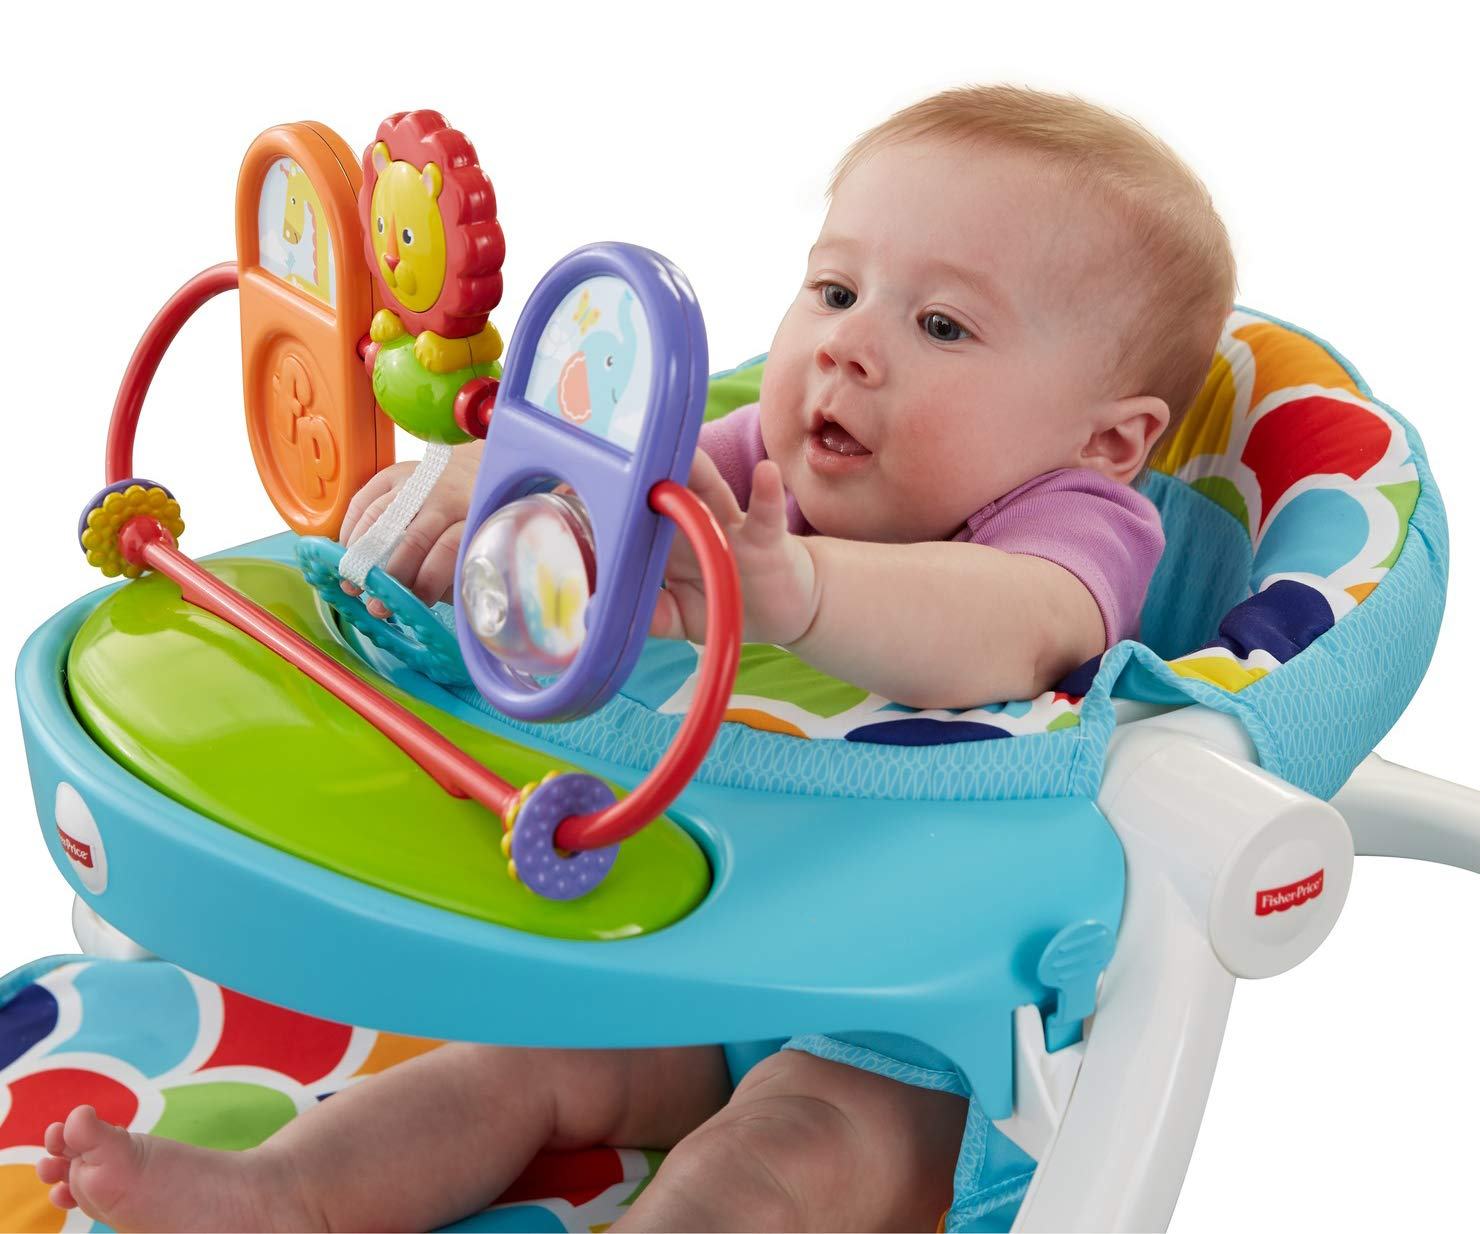 6f3653c43f2 Amazon.com   Fisher-Price Sit-Me-Up Floor Seat with Tray   Baby